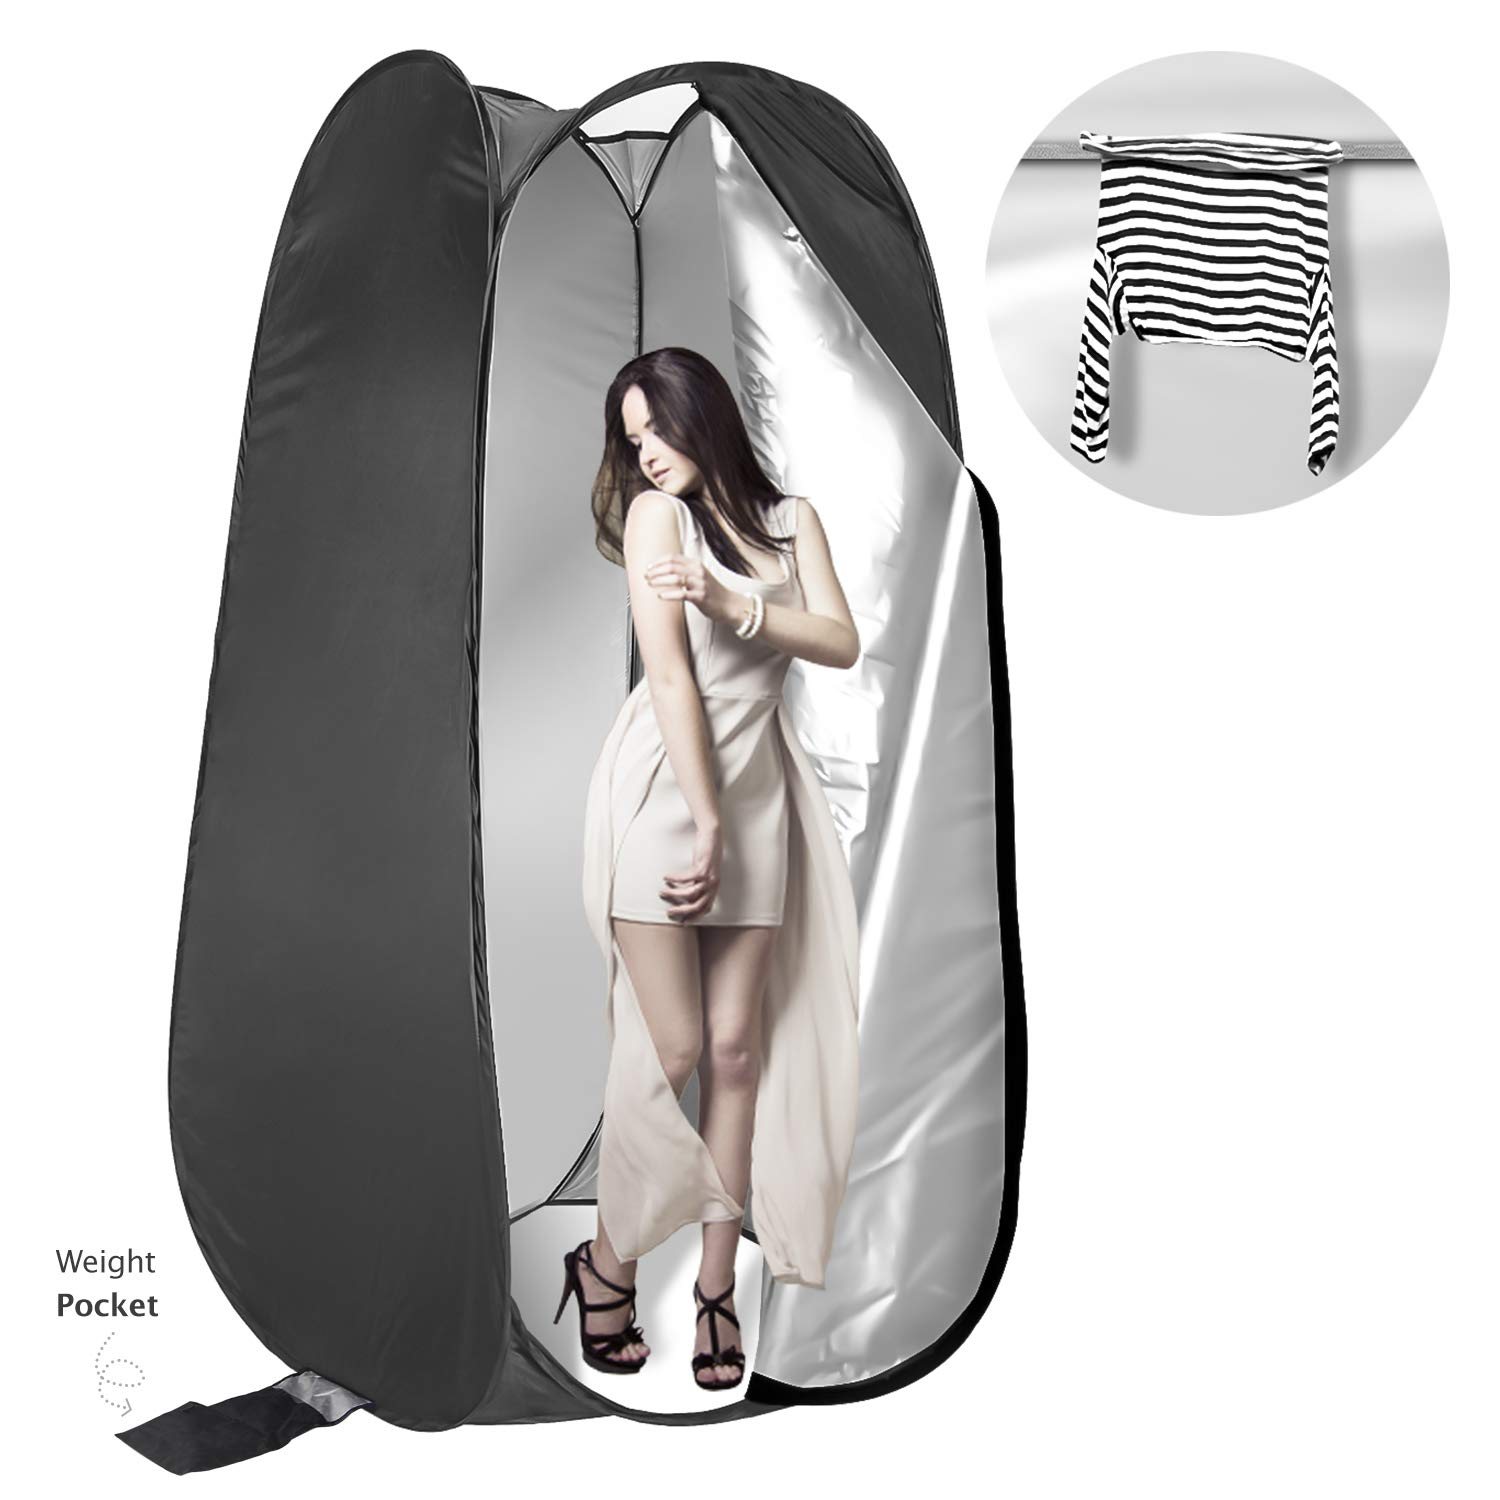 LS Photography 75'' Portable Indoor/Outdoor Photo Studio, Camping, and Beach Pop up Changing Dressing Tent, LGG751